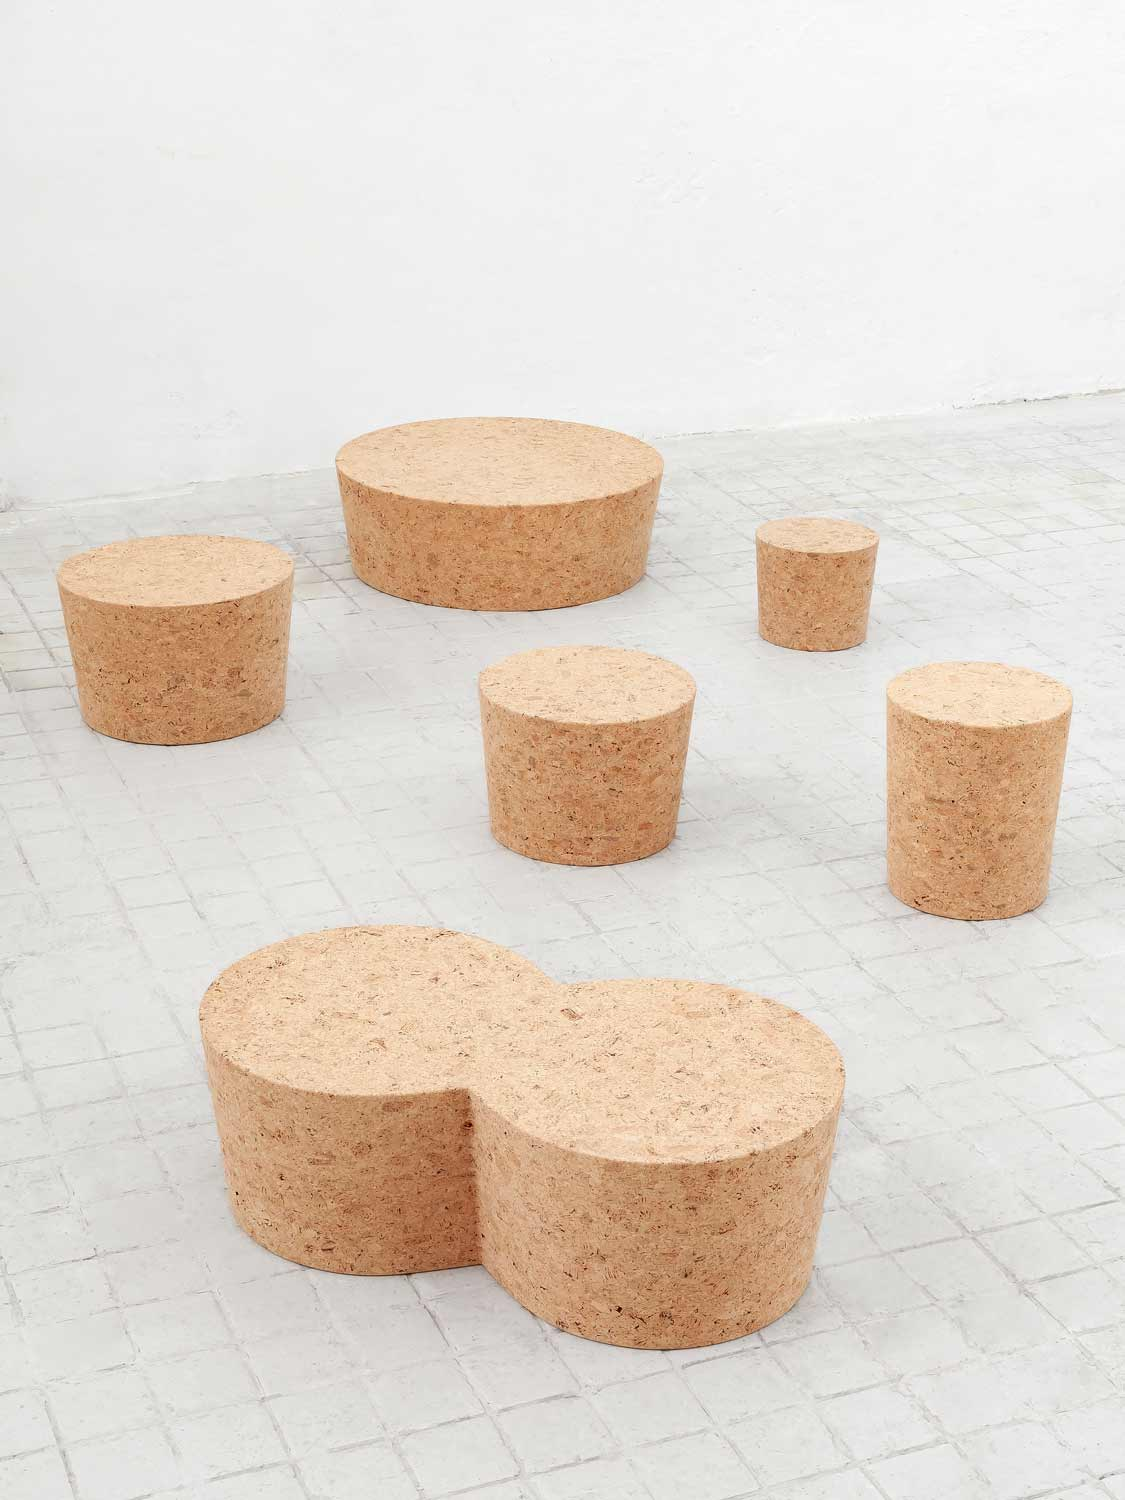 projects_editions-kasmin_gallery_corks_06